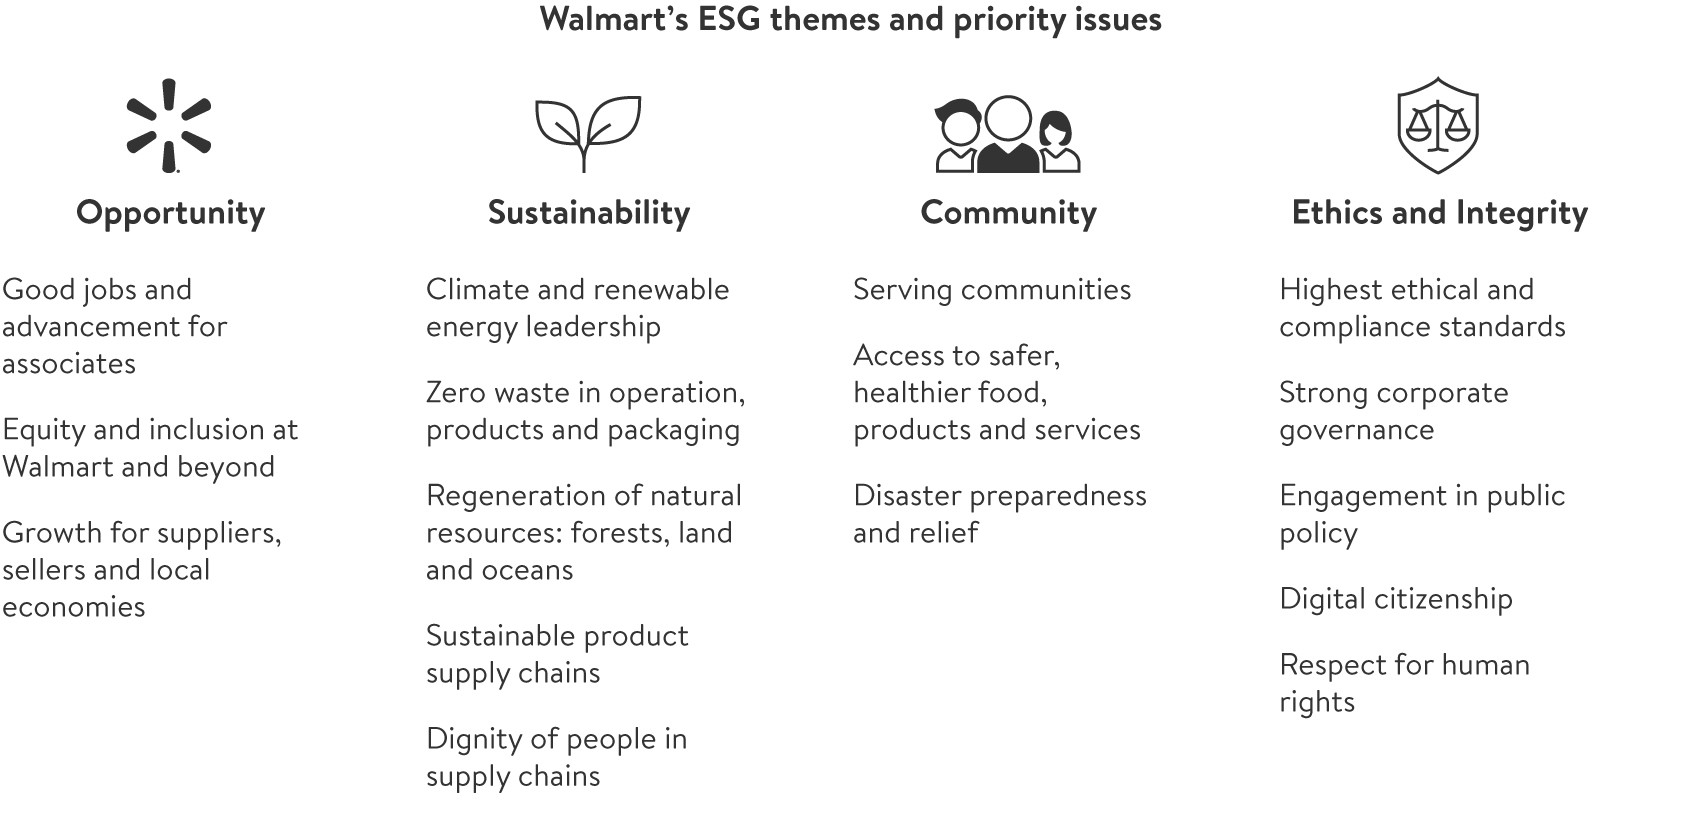 ESG Approach themes and priorities